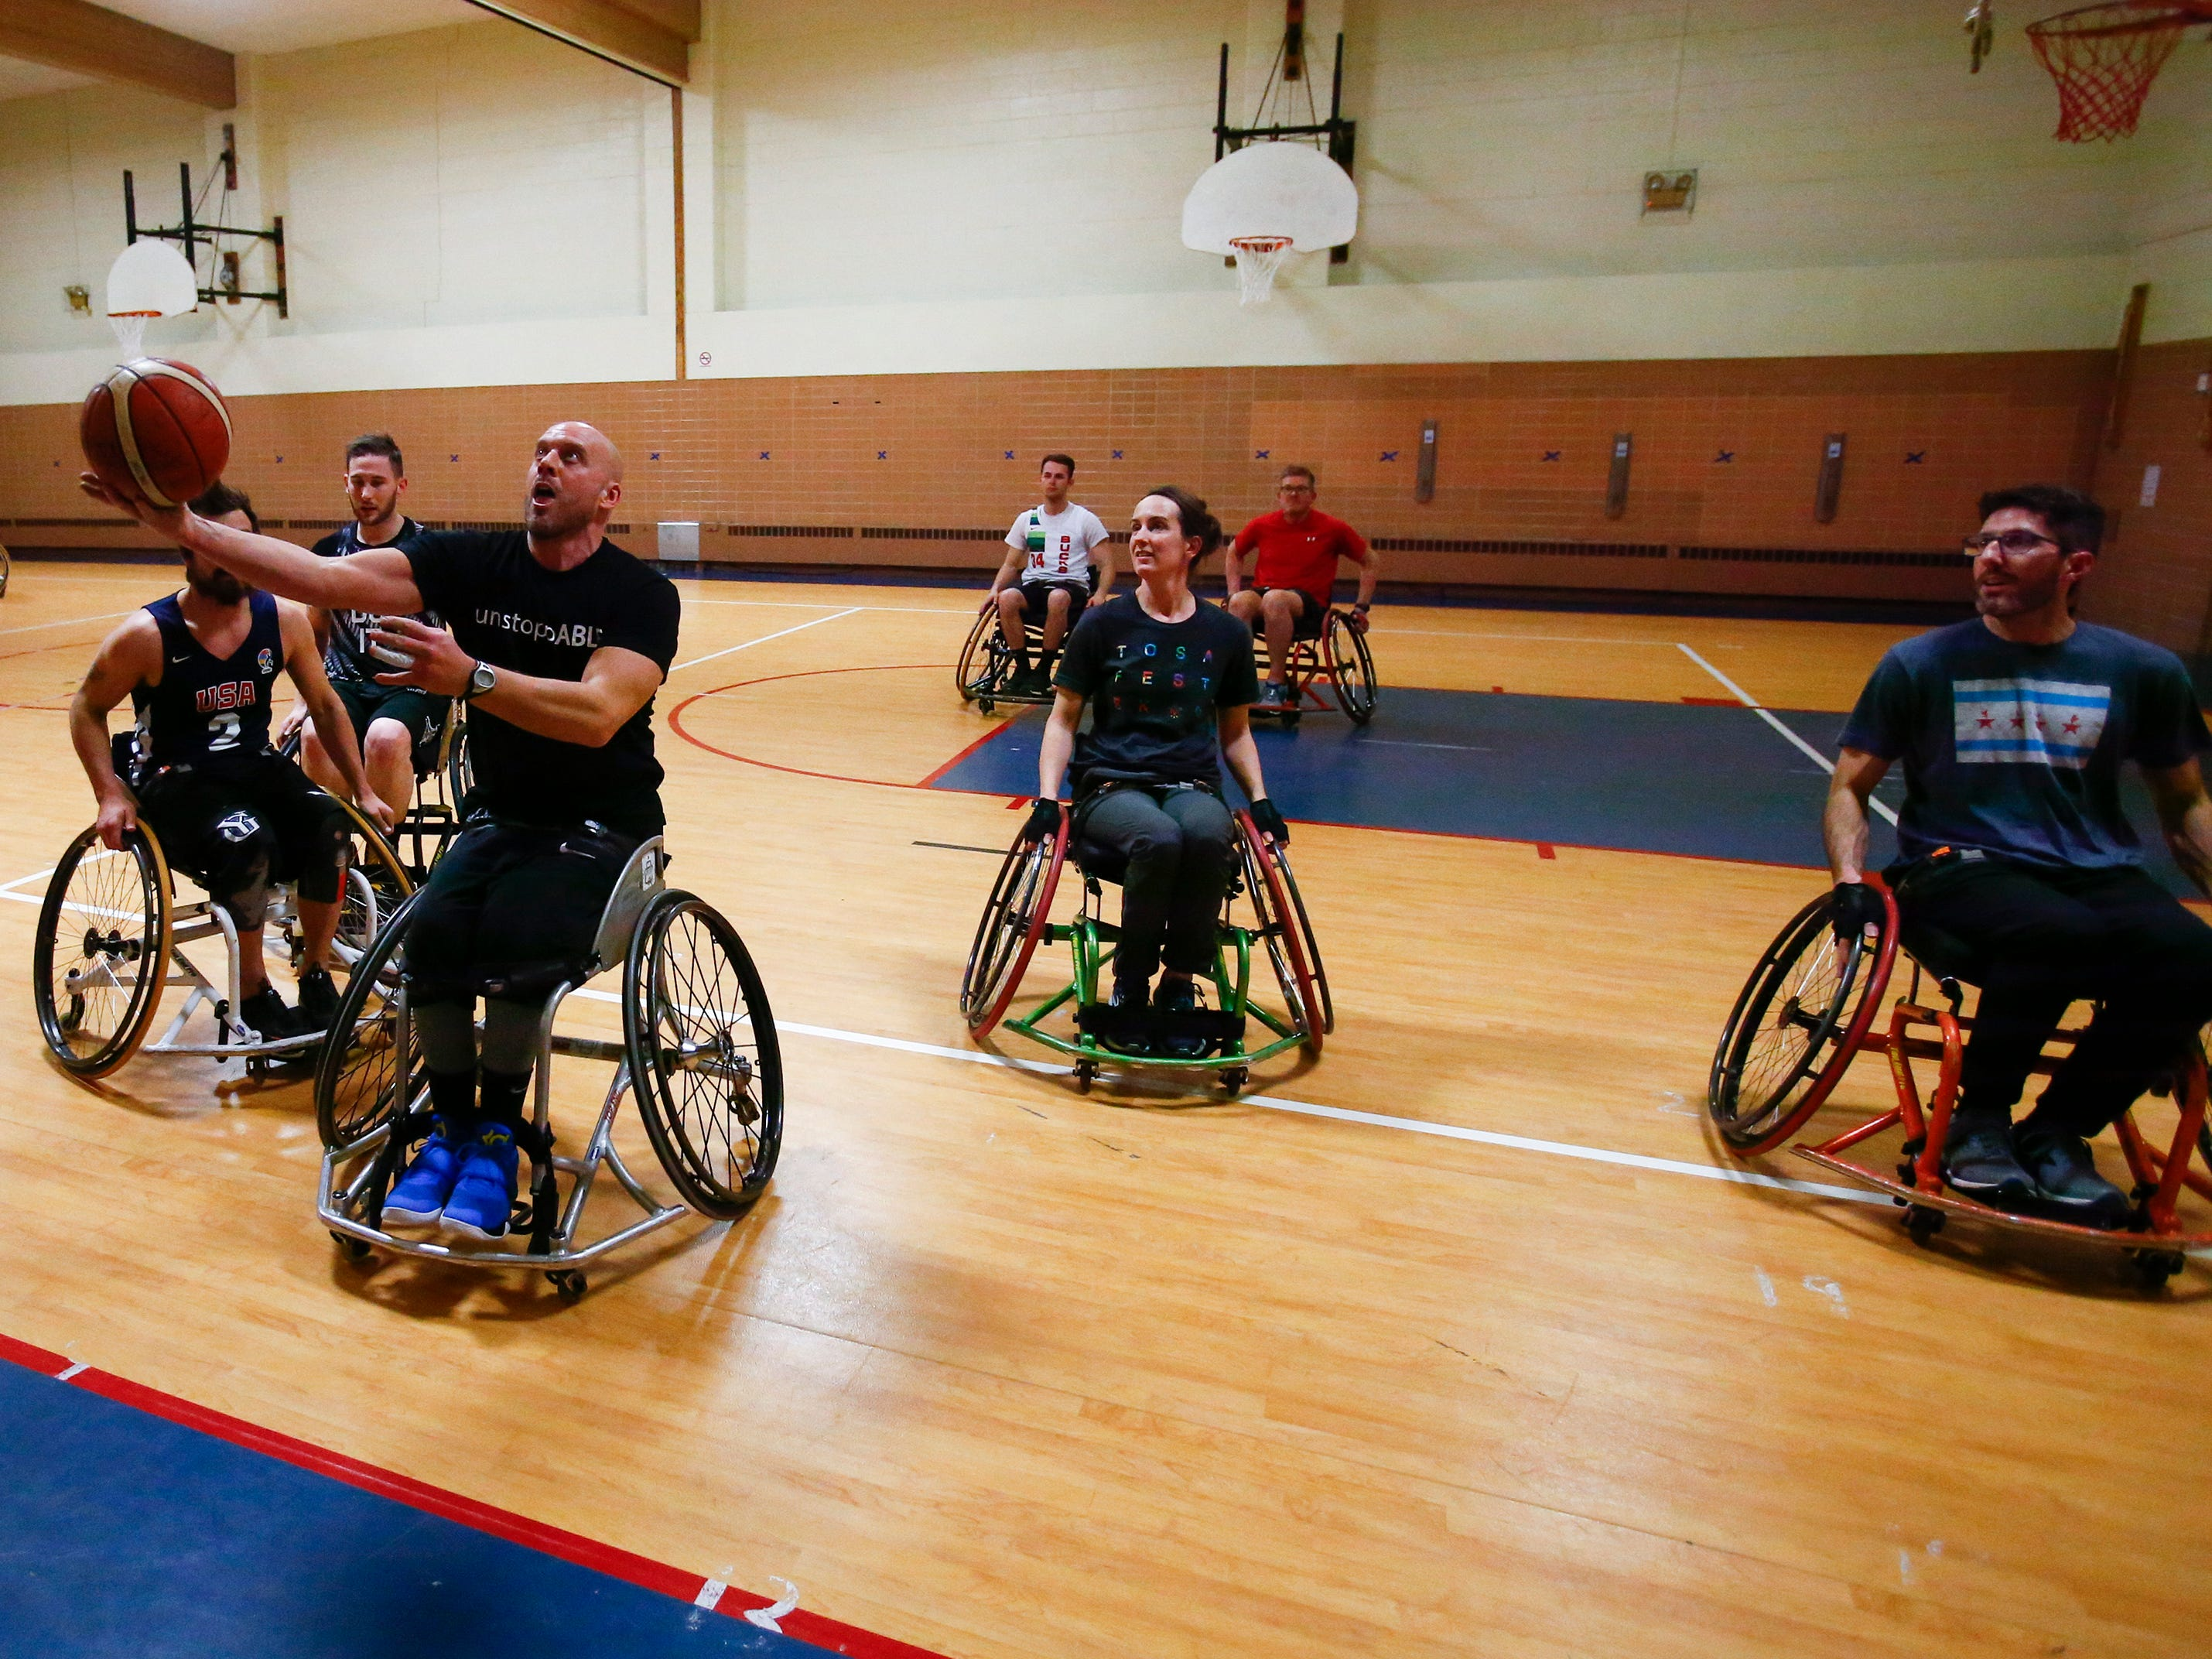 Damian Buchman fires for two points while playing in the 3 vs. 3: Adult Wheelchair Basketball League with able bodied and mobility limited players at Jefferson Elementary School in Wauwatosa on Jan. 24.